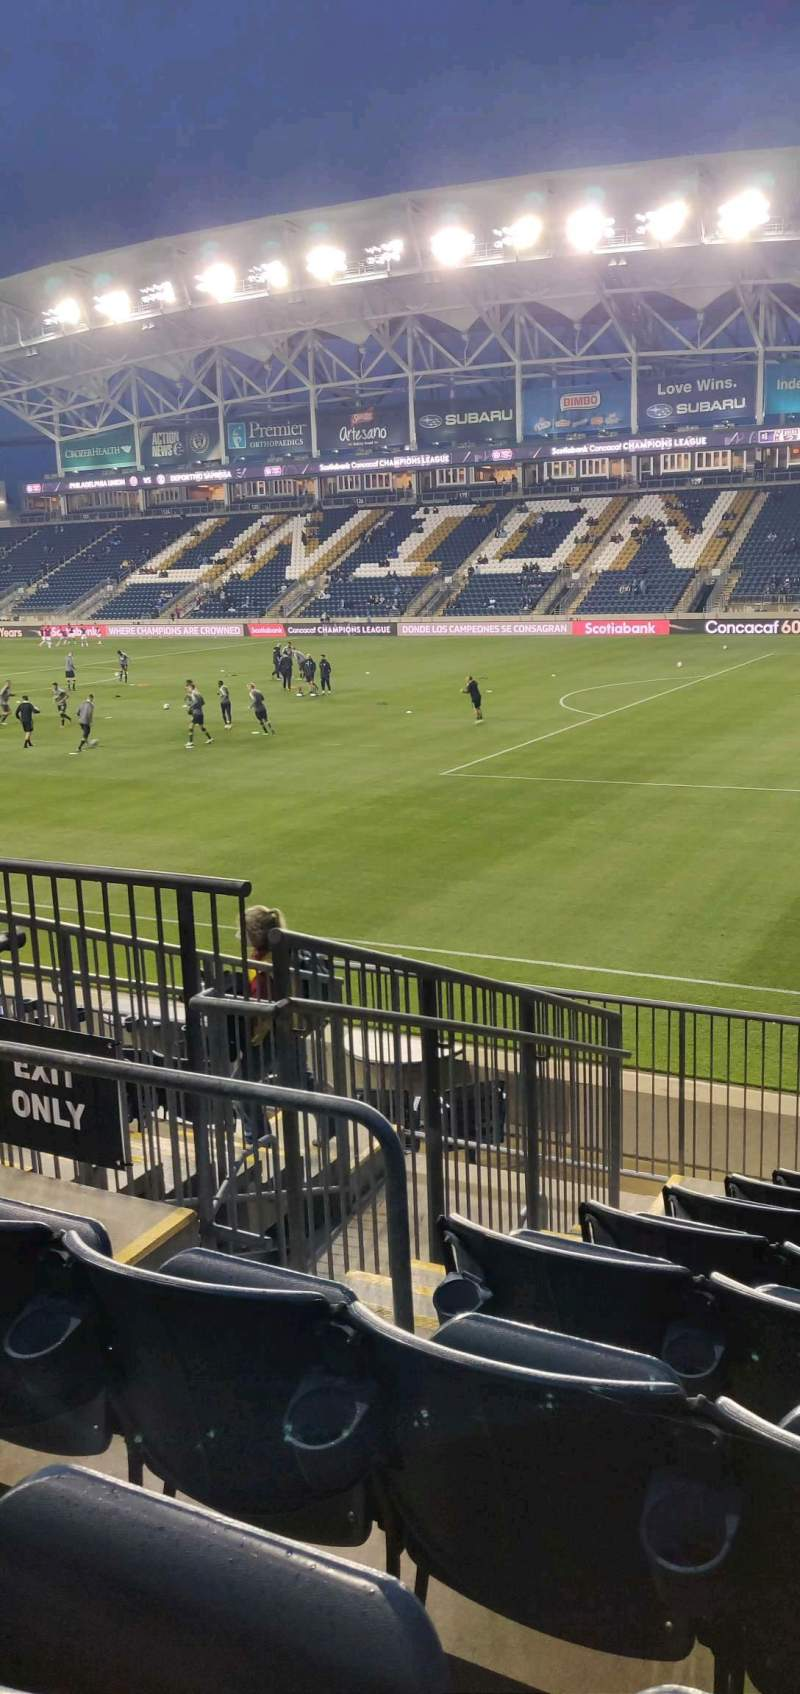 Seating view for Subaru Park Section 102 Row M Seat 12